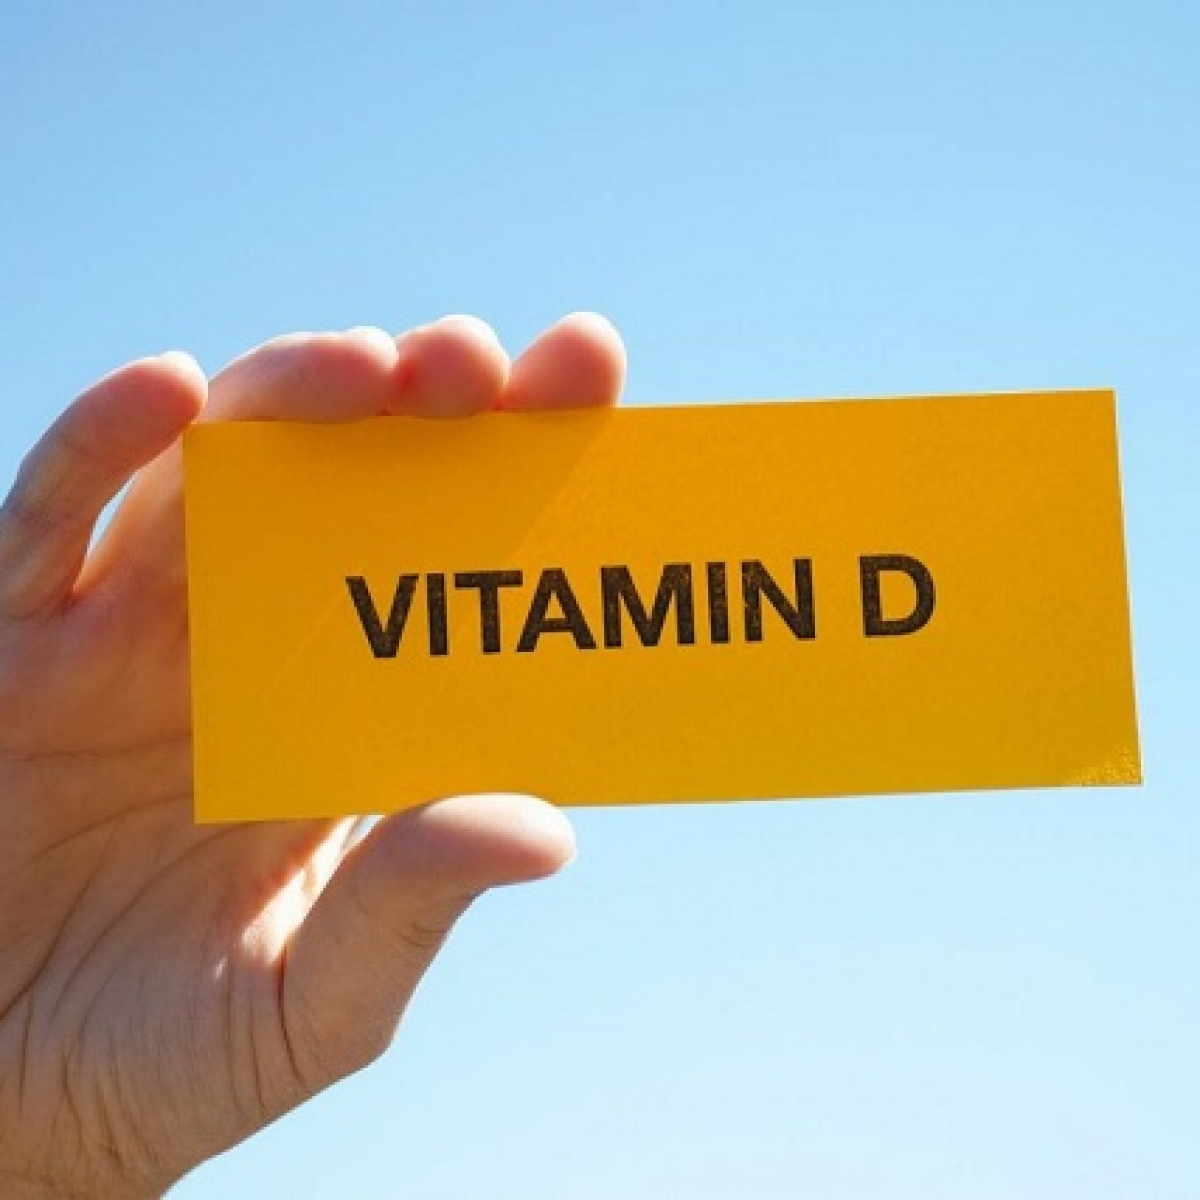 Revealed: The secret connection between Vitamin D and gut bacteria